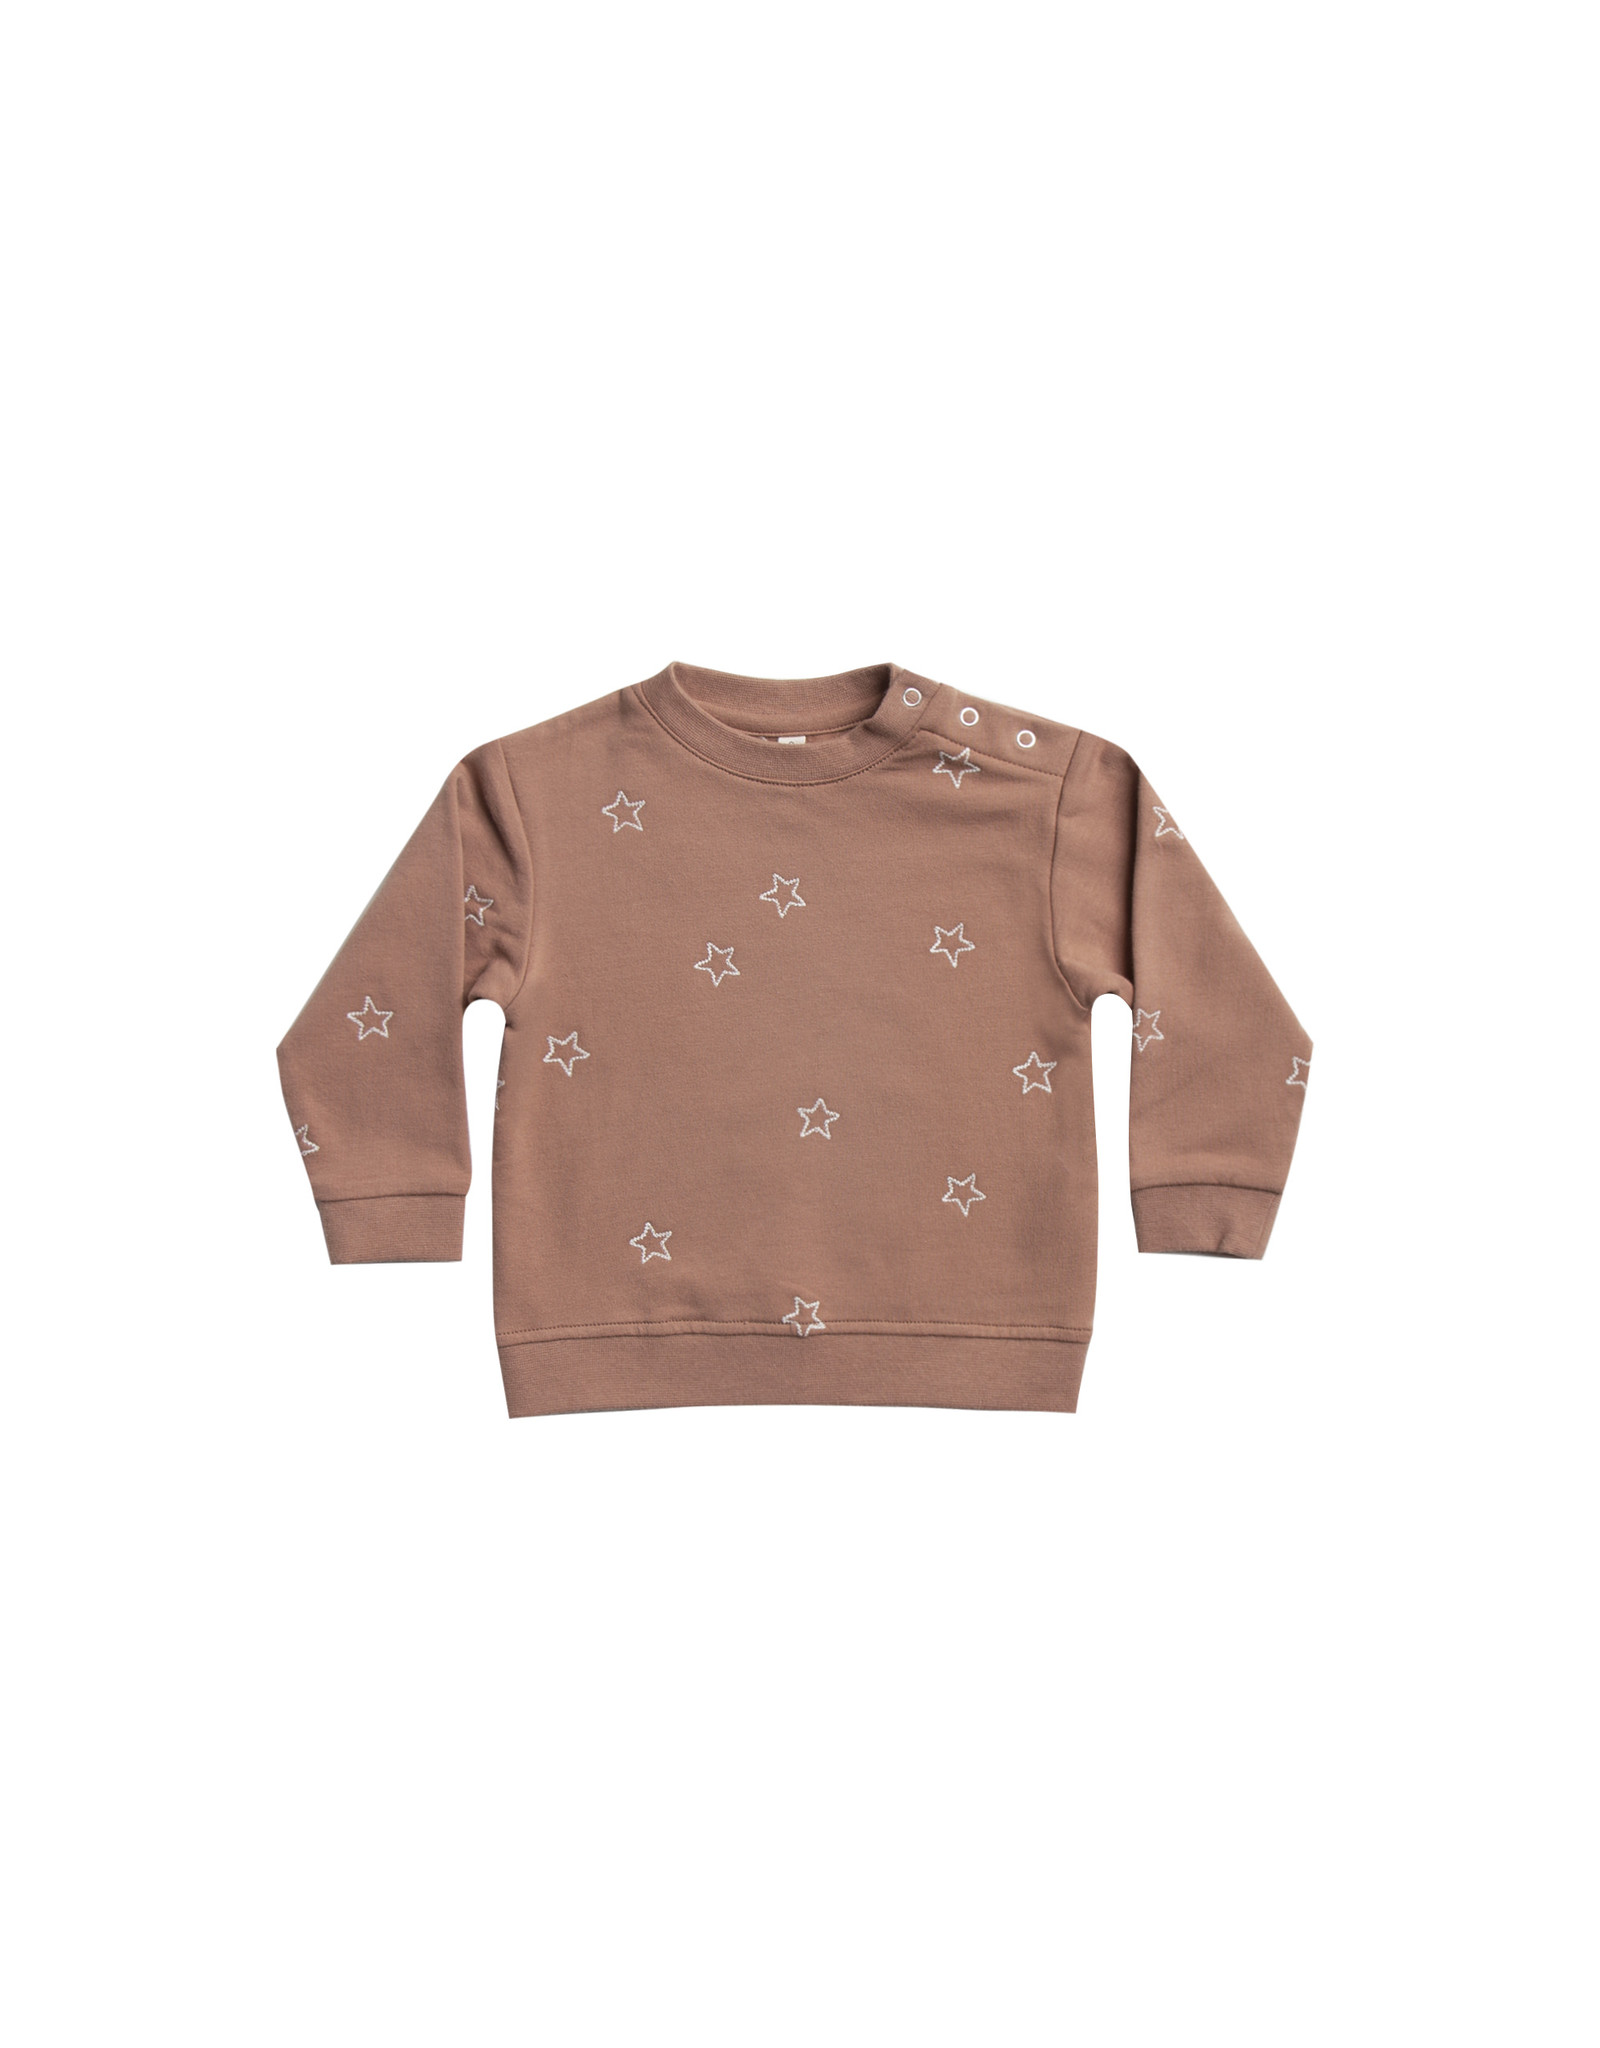 Fleece Basic Sweatshirt - clay